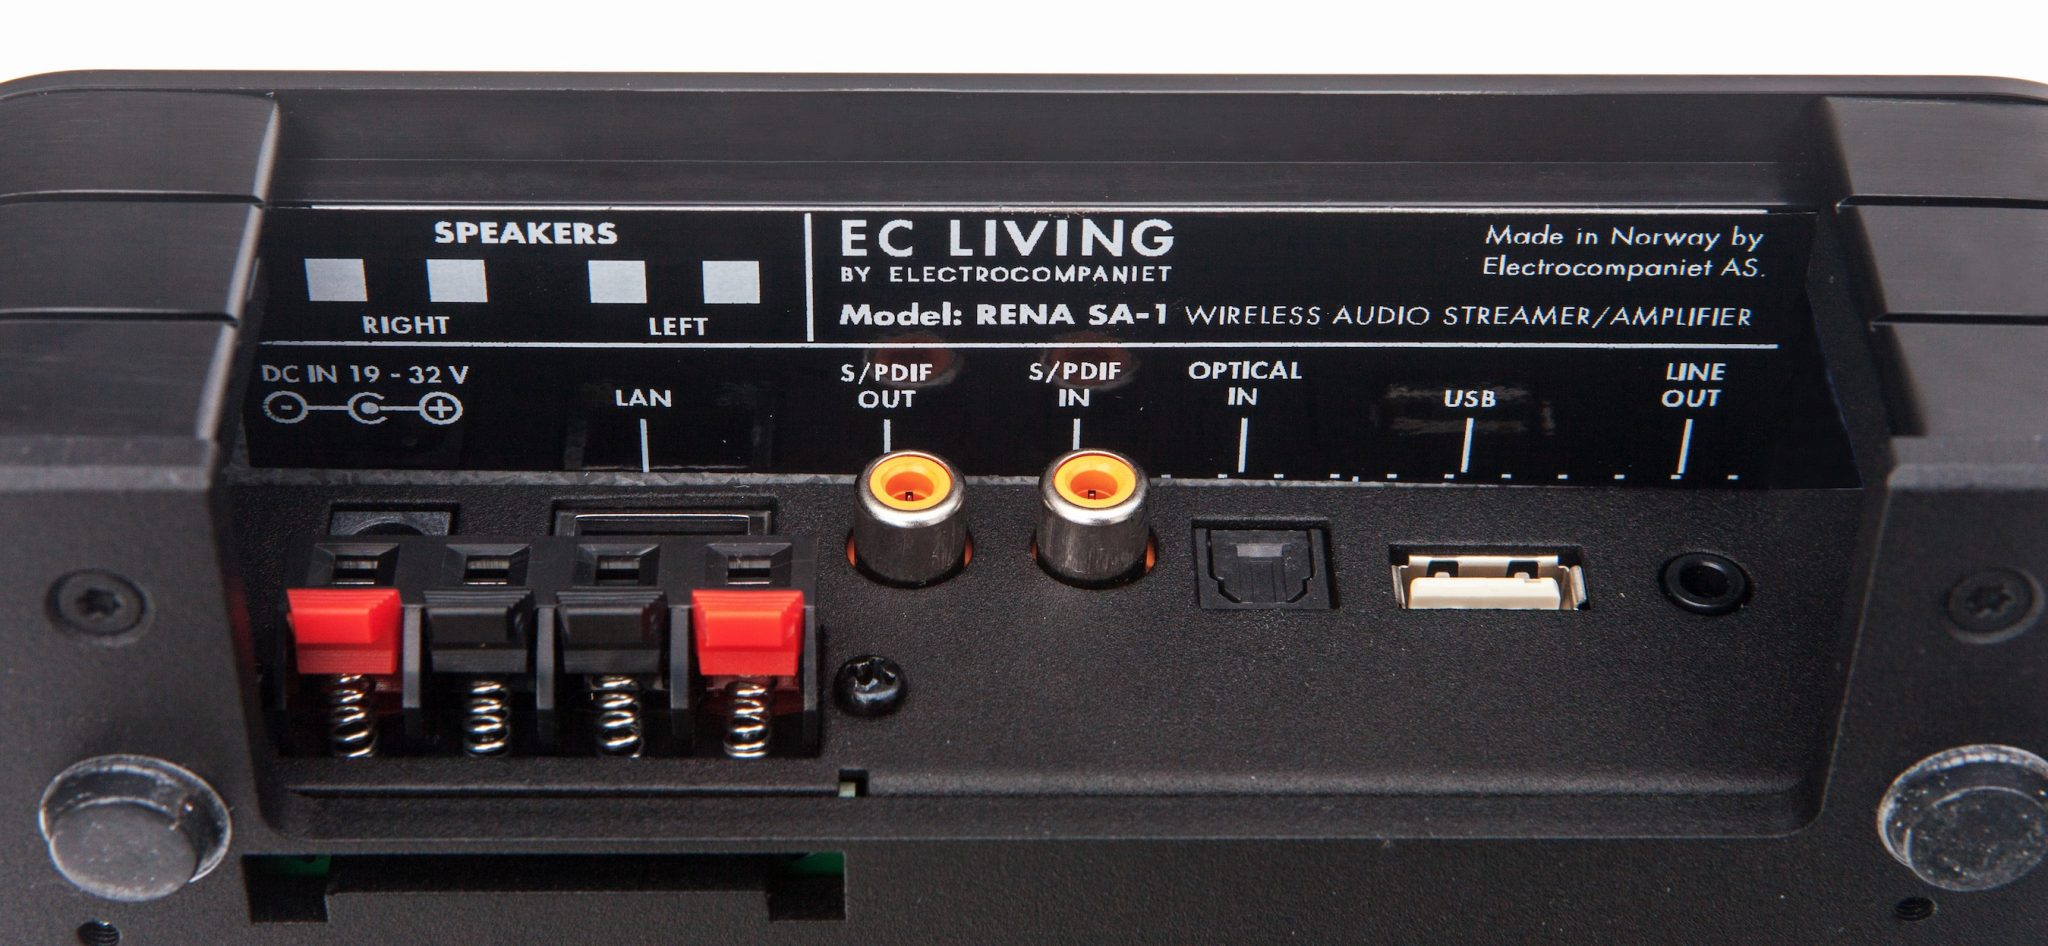 Rena SA-1 Wireless Audio Streamer From Electrocompaniet